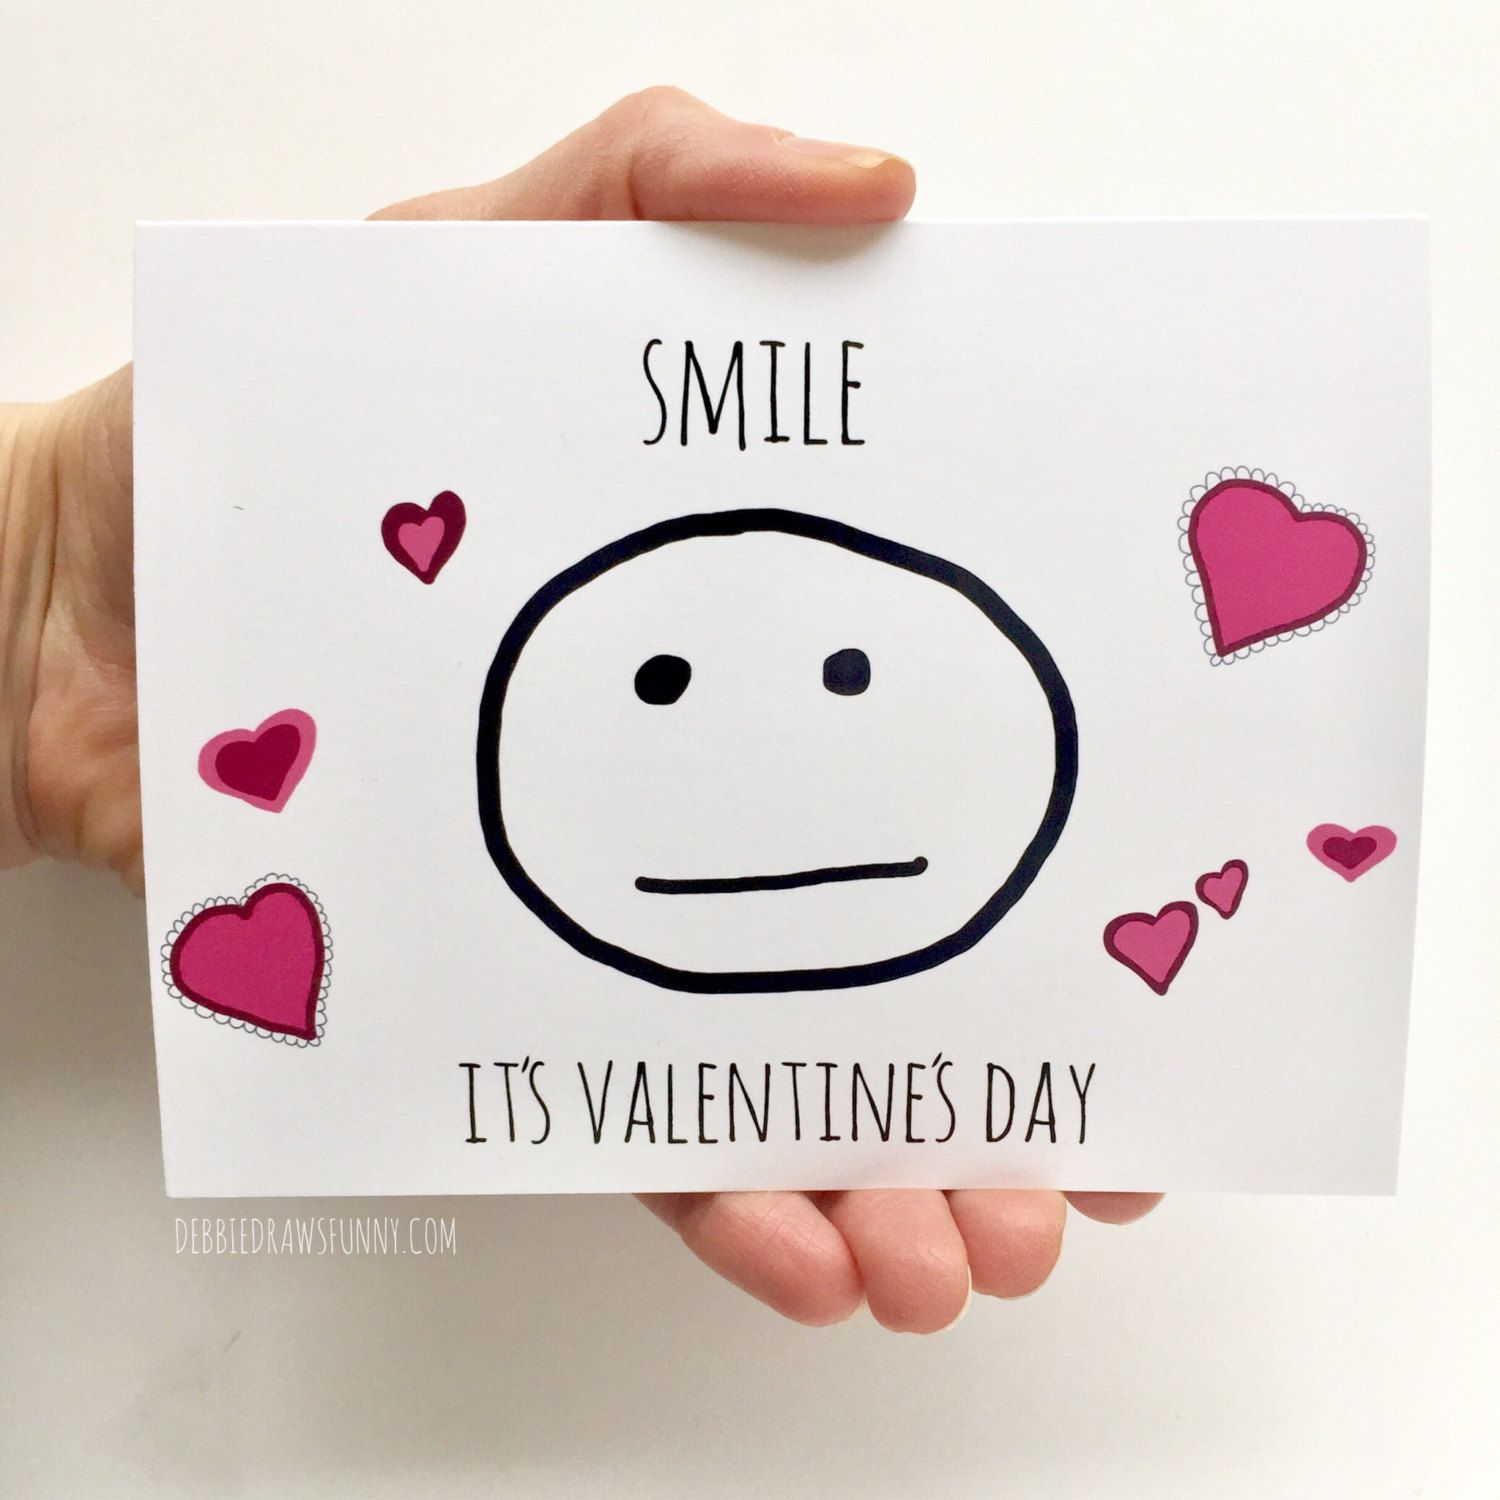 Smile Its Valentines Day Funny Card Valentines Valentines Funny